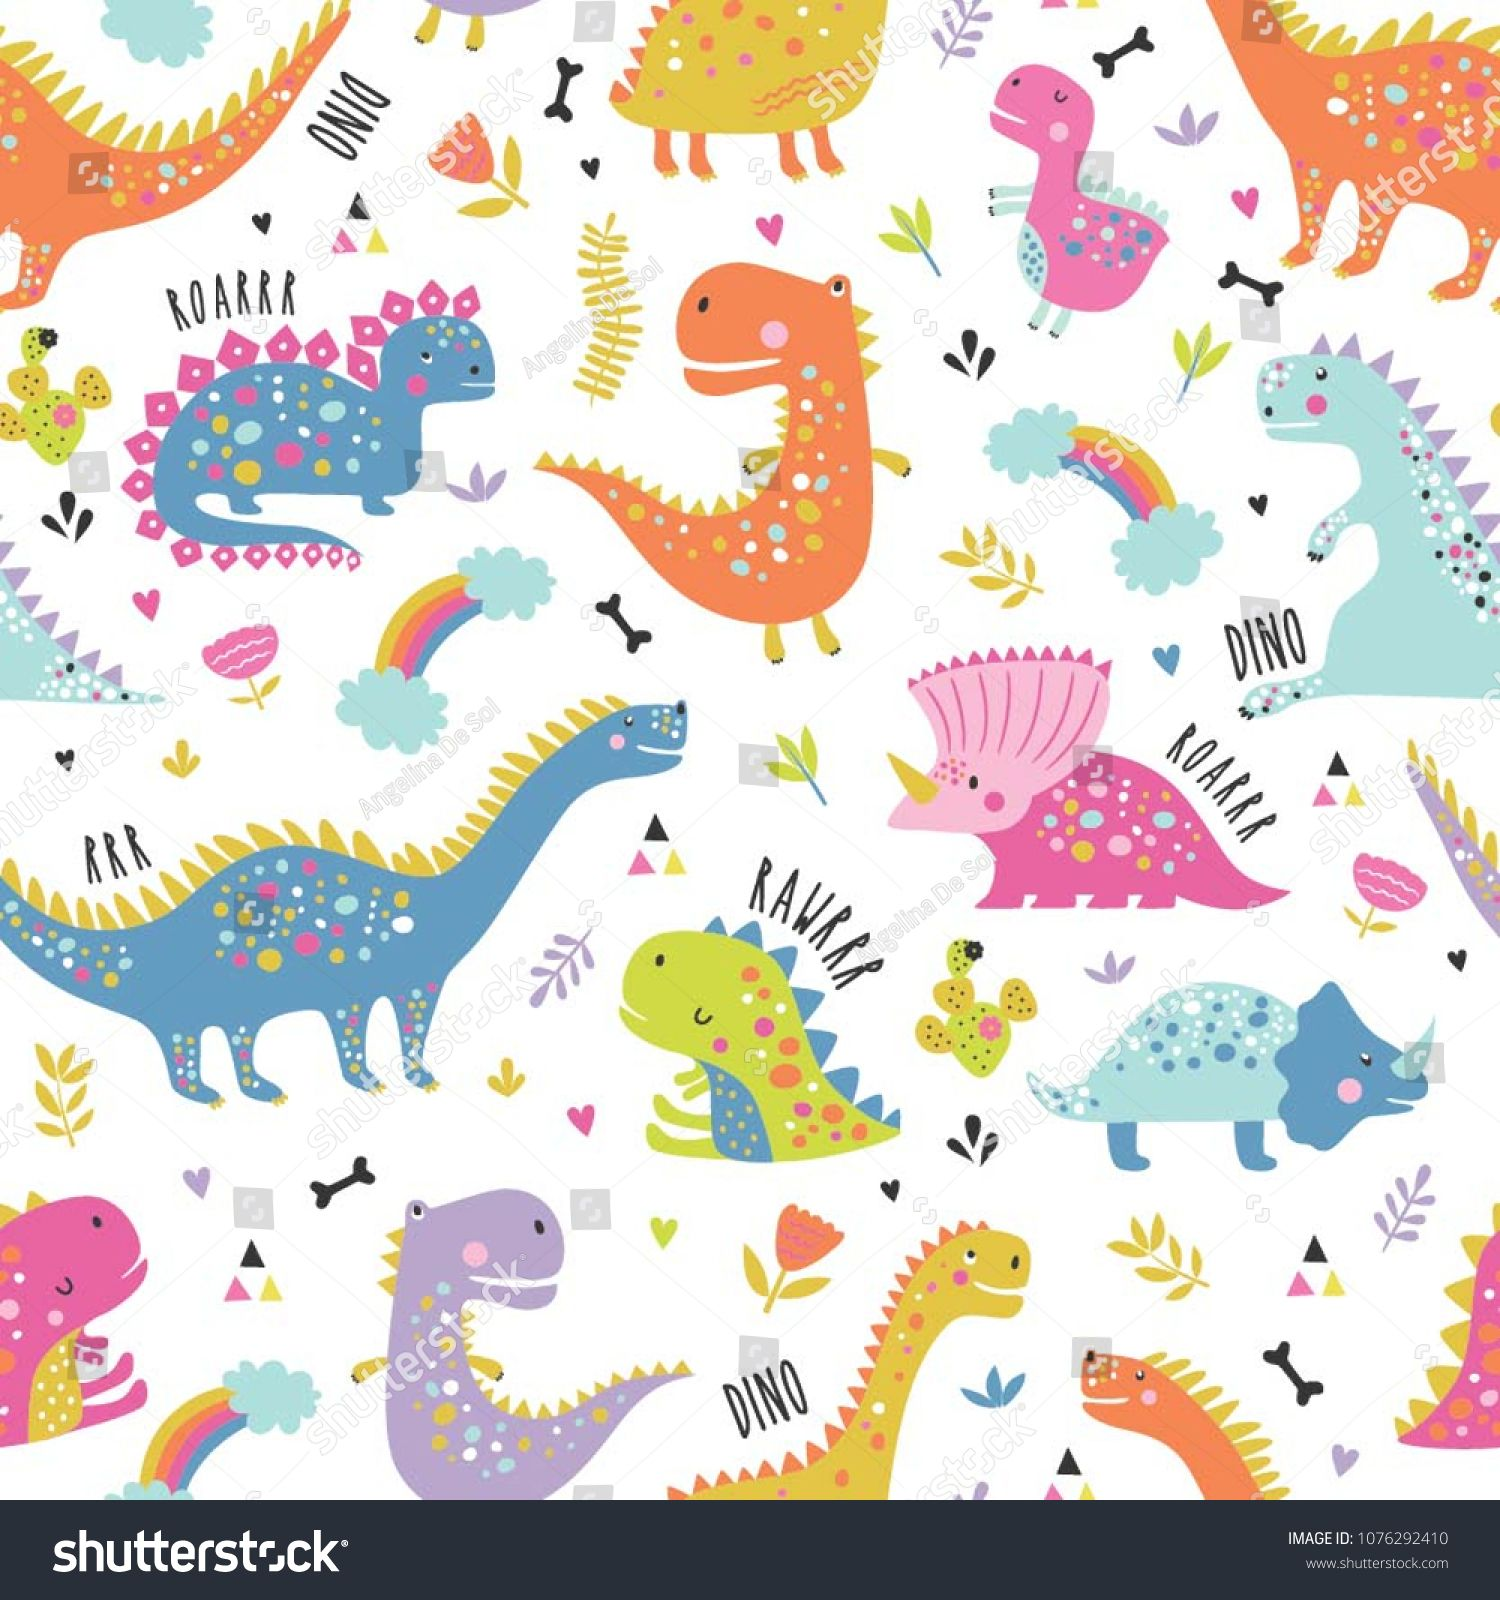 Cute Funny Kids Dinosaurs Pattern Colorful Dinosaurs Vector Background Backdrop For Textile And Fabric Dinosaurs Patt Dinosaur Pattern Dinosaur Kids Dinosaur